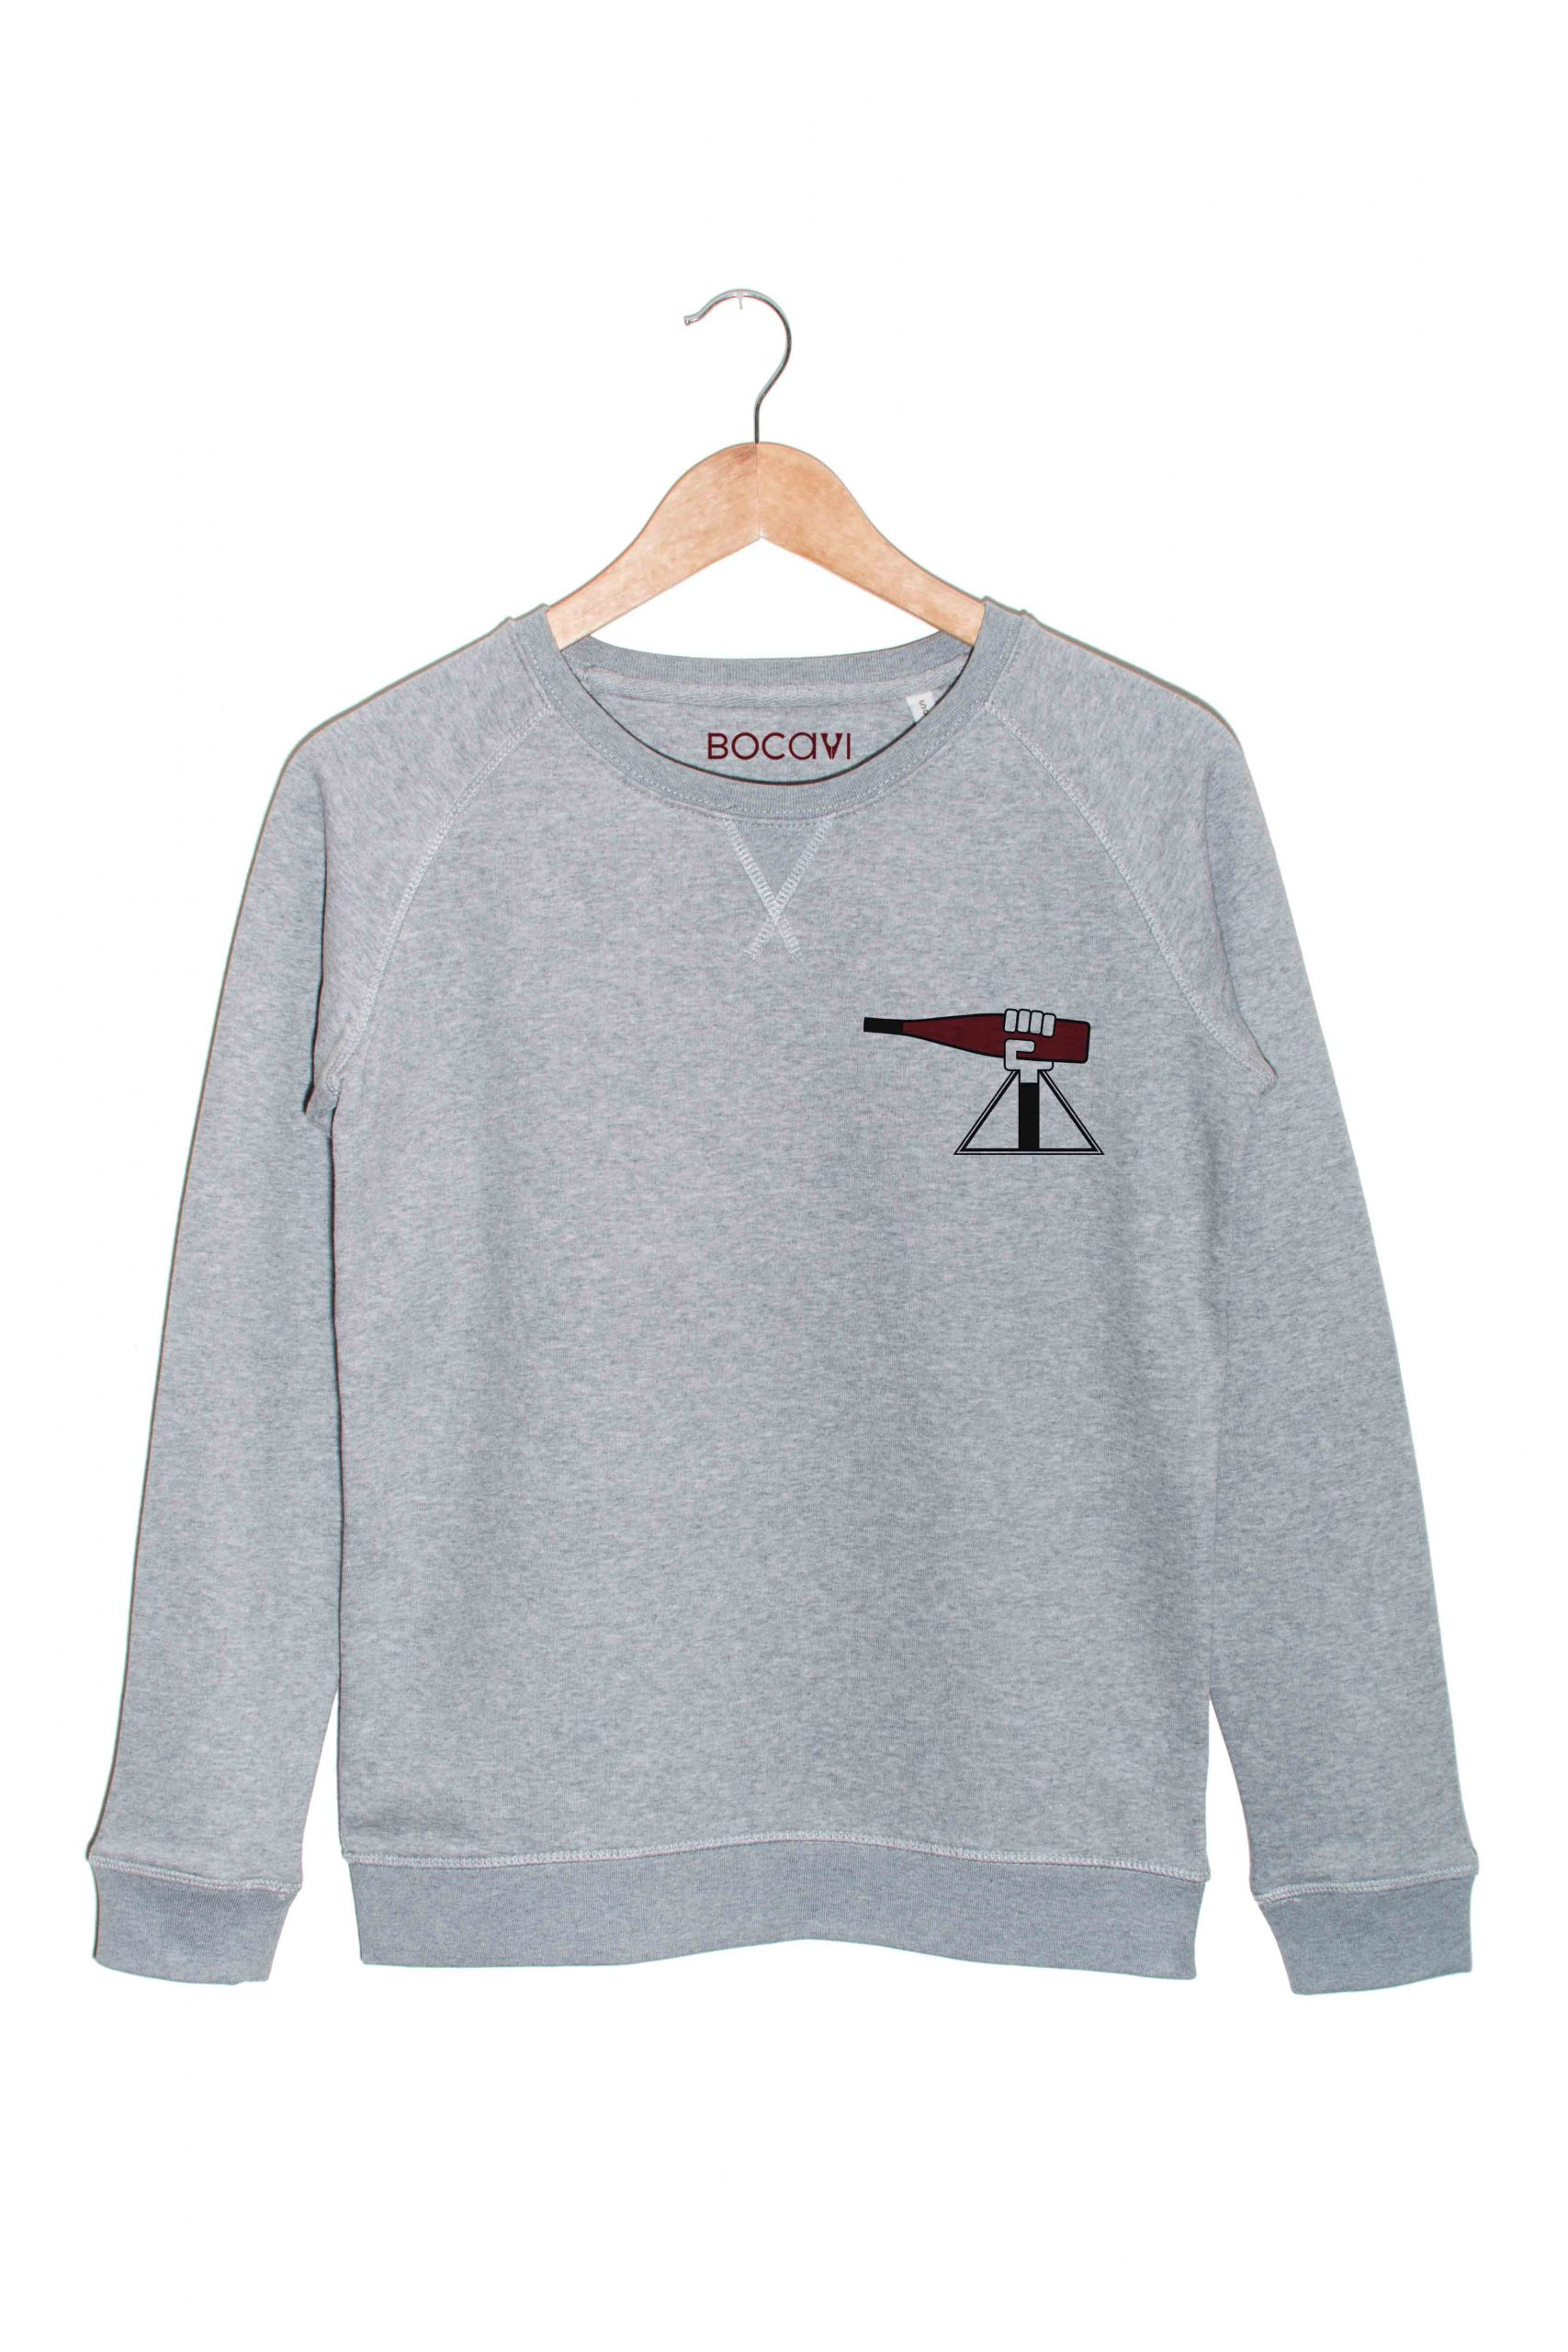 alsace alsacienne zink rouge sweat gris